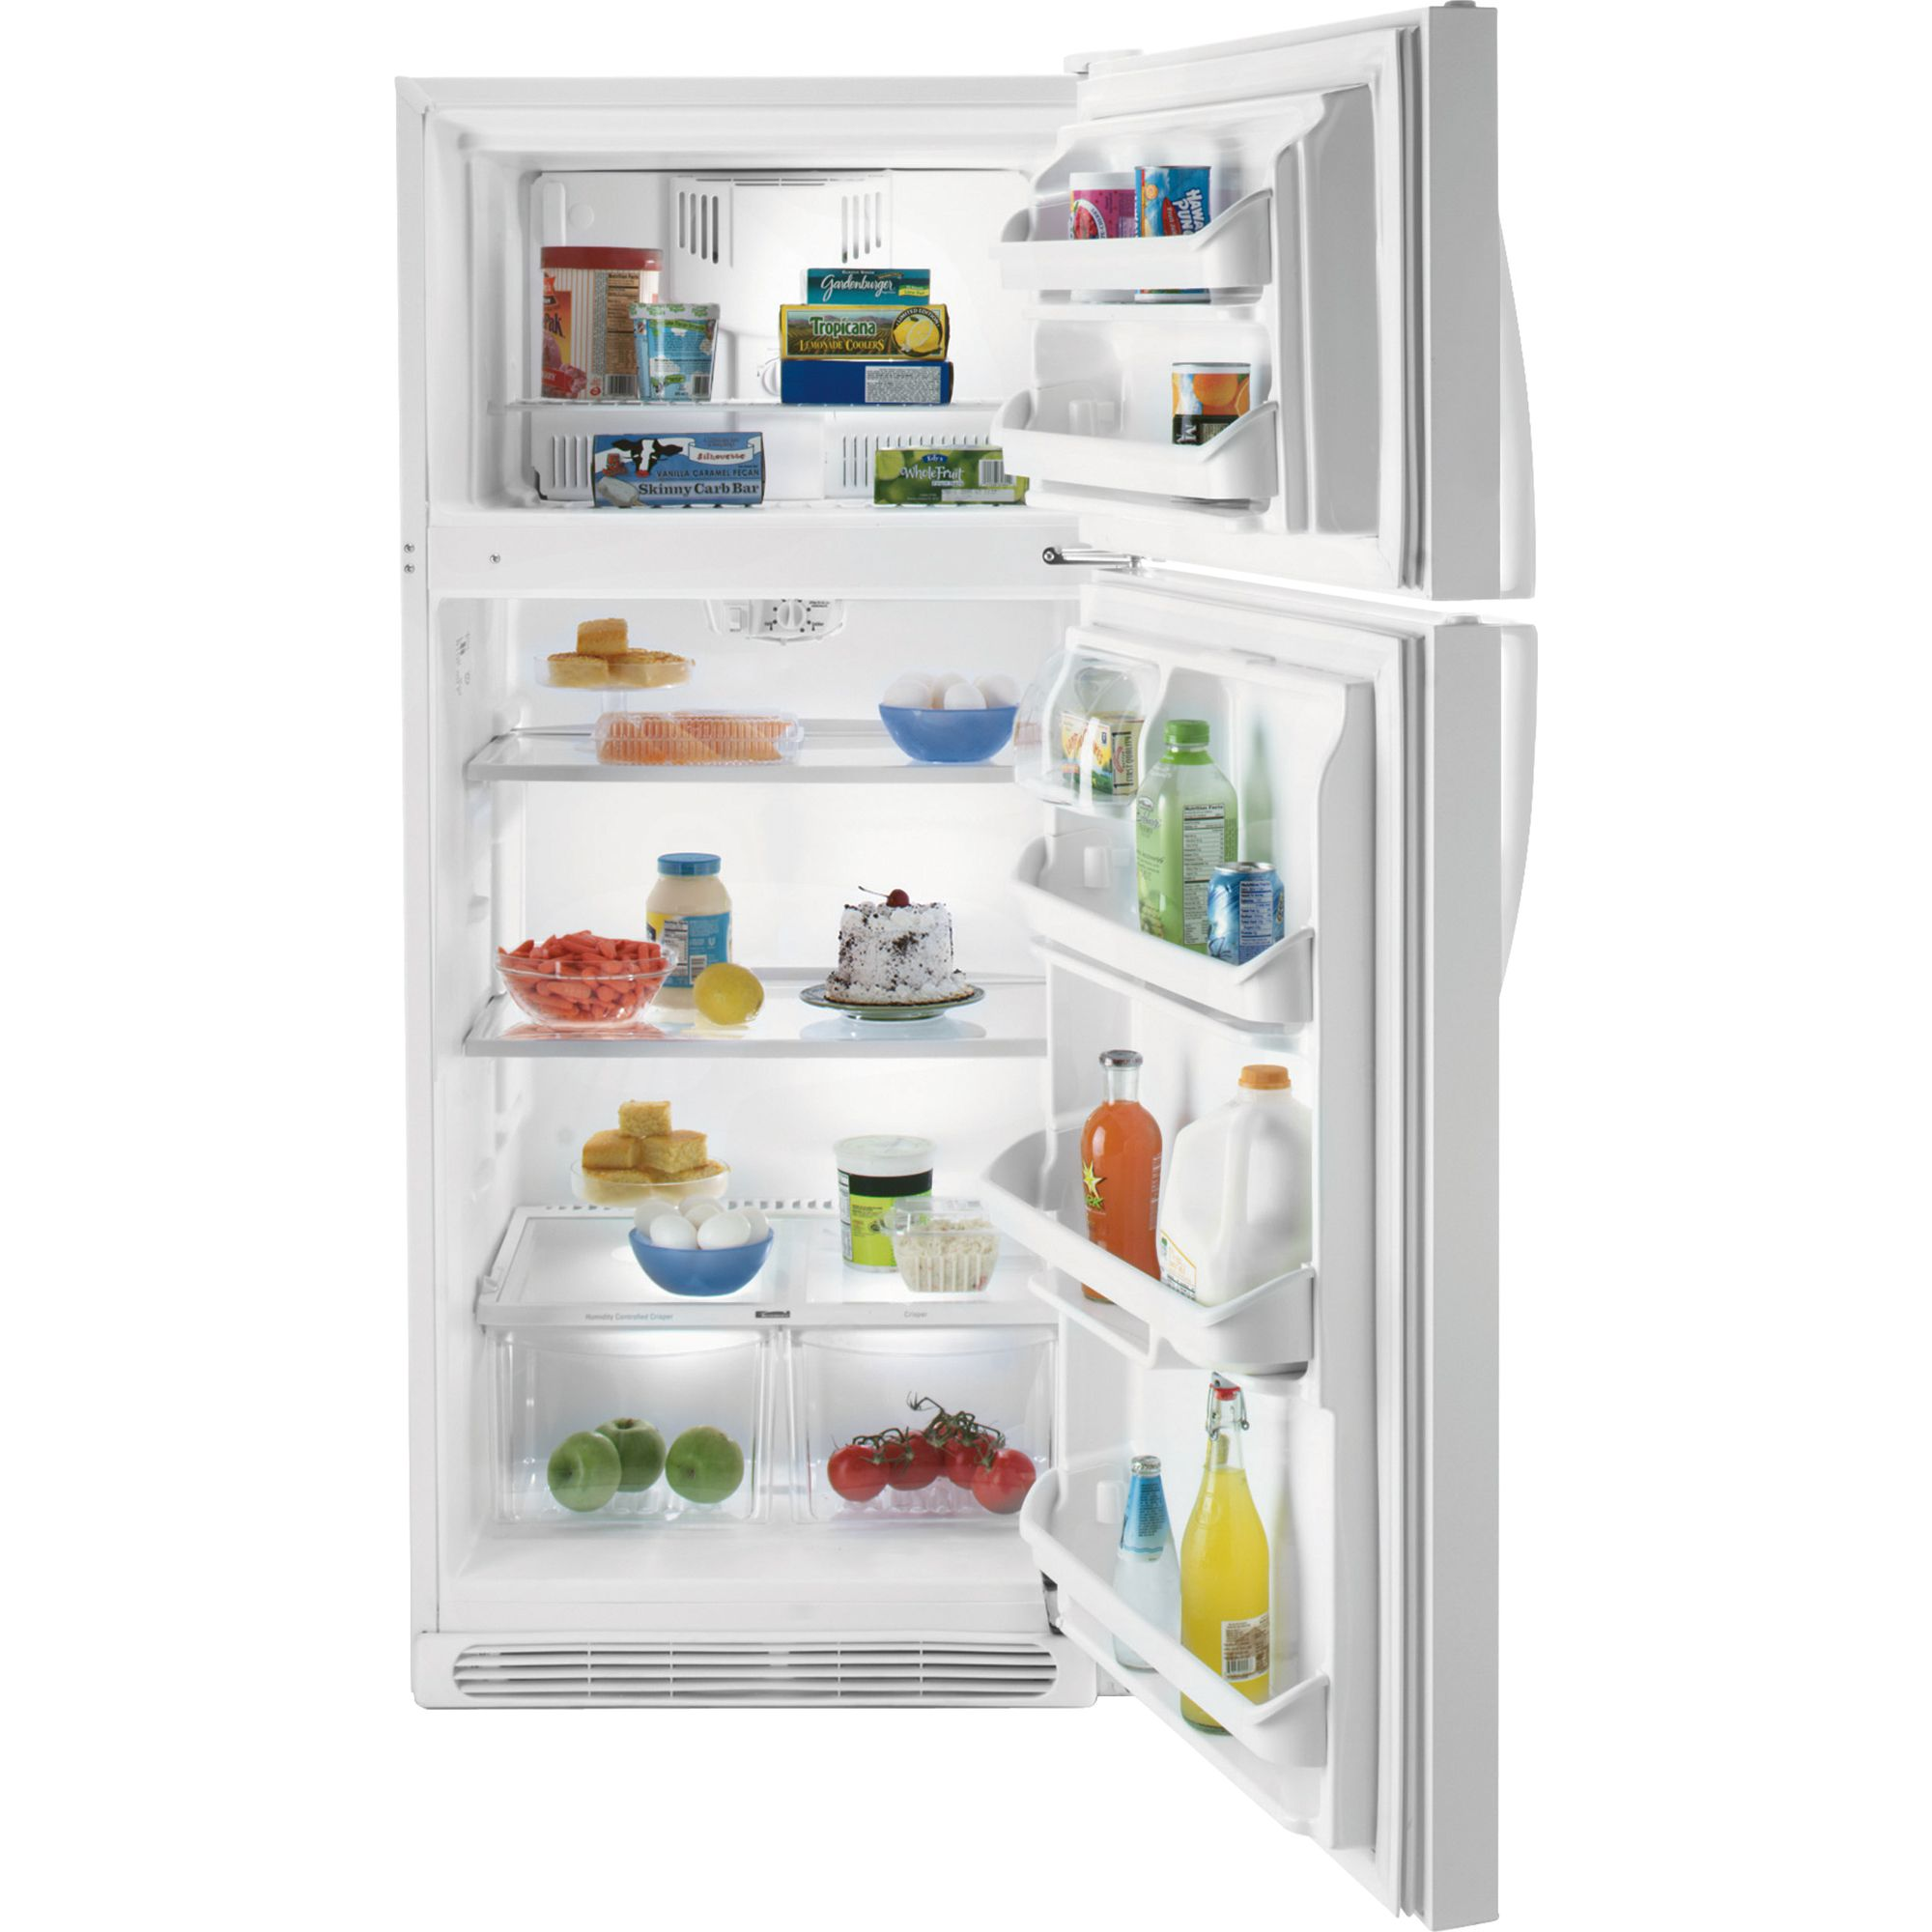 Kenmore 18.2 cu. ft. Top-Freezer Refrigerator w/ Glass Shelves -  White